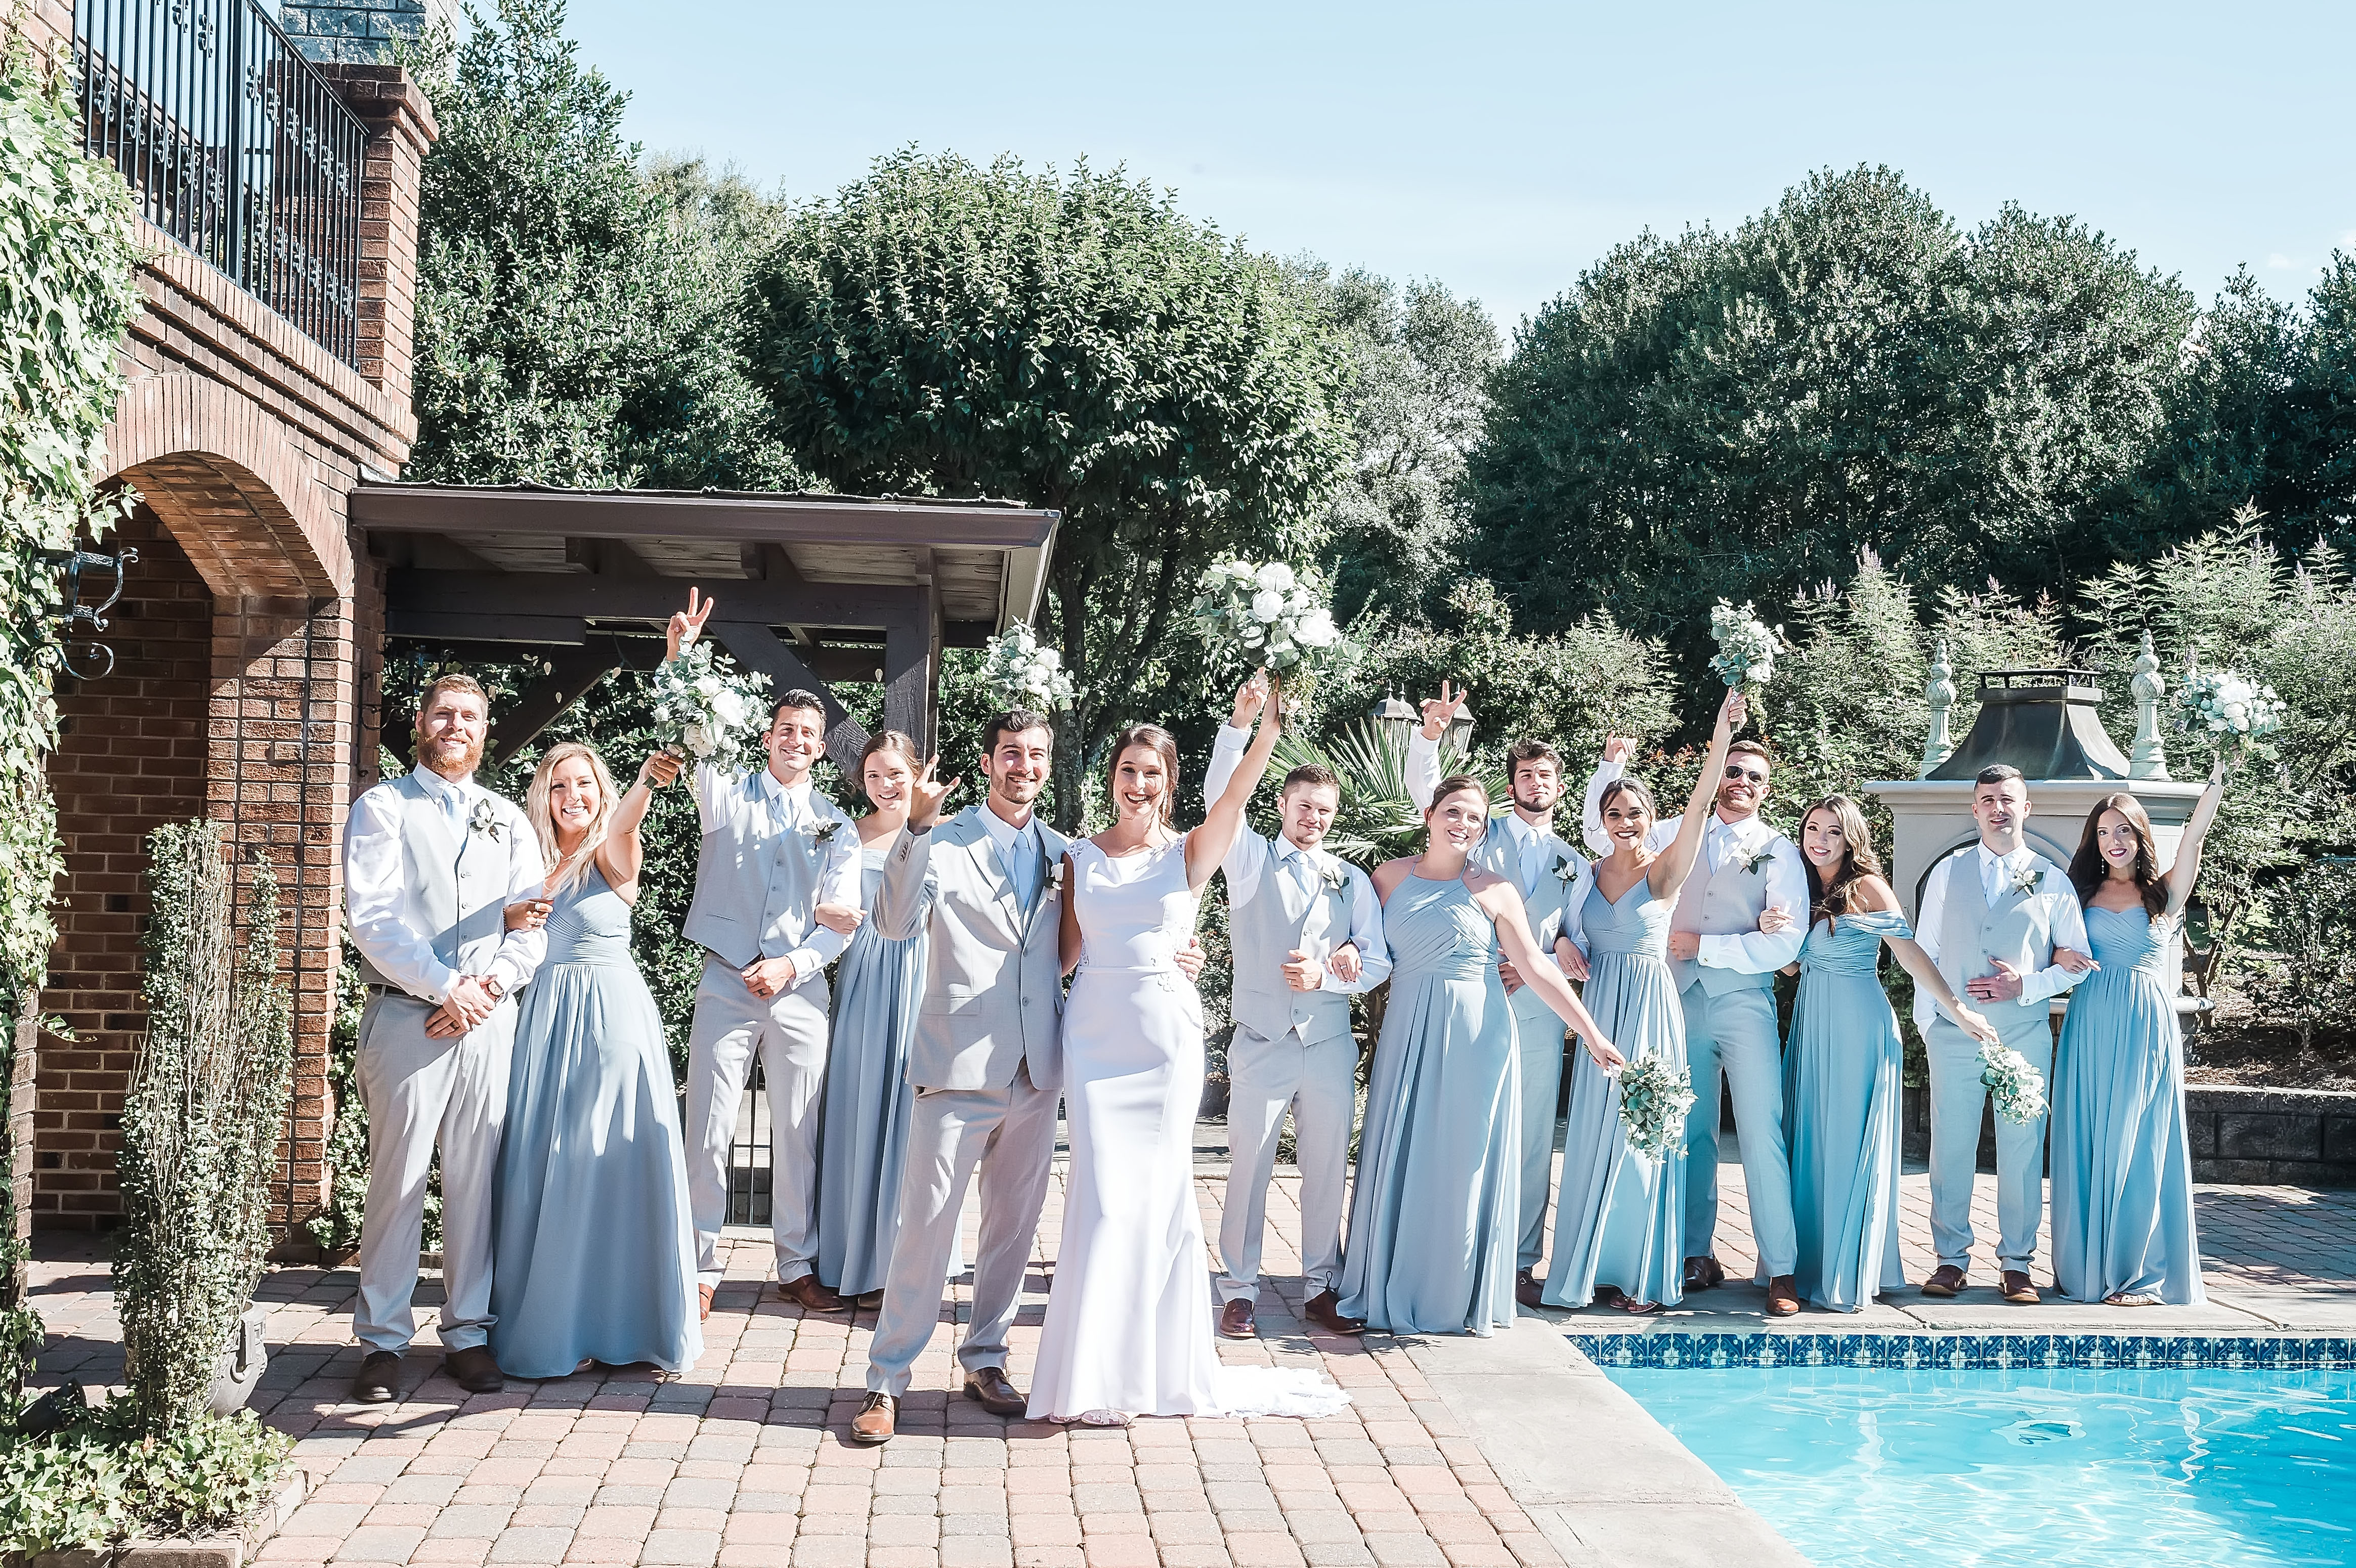 wedding party photo inspiration, cocktail hour by pool, outdoor wedding